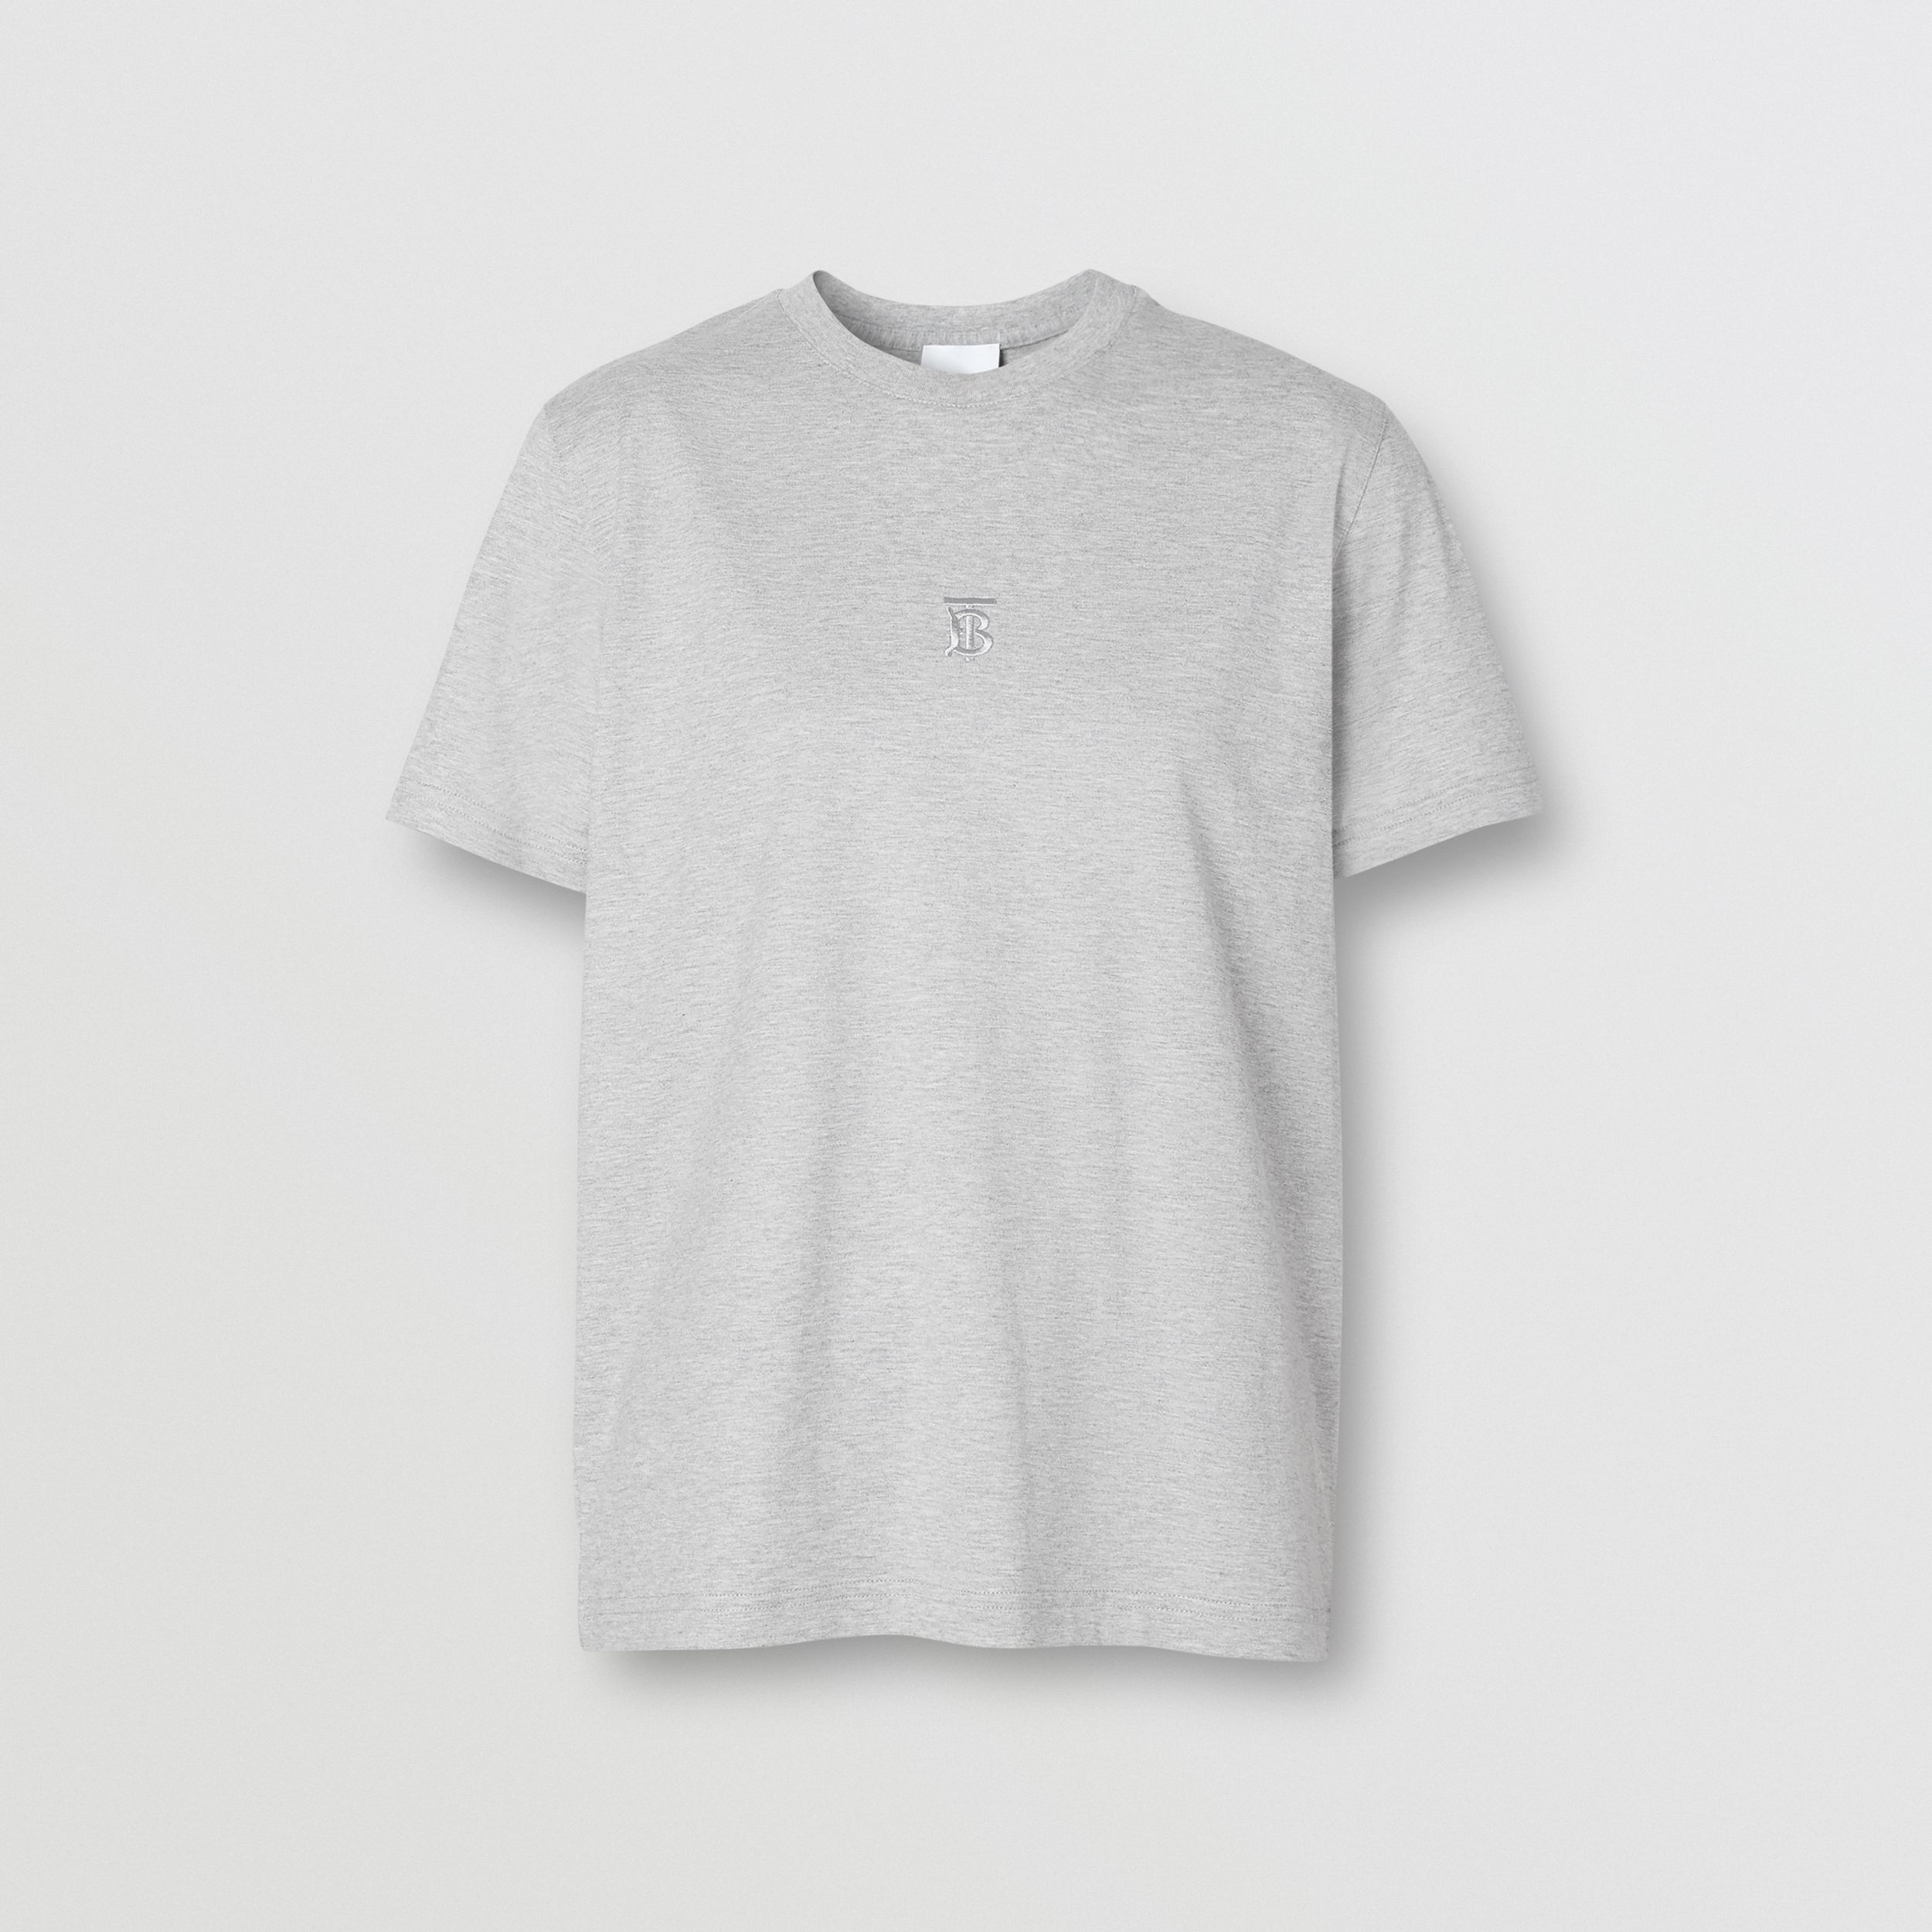 Monogram Motif Cotton T-shirt in Pale Grey Melange - Women | Burberry - 4